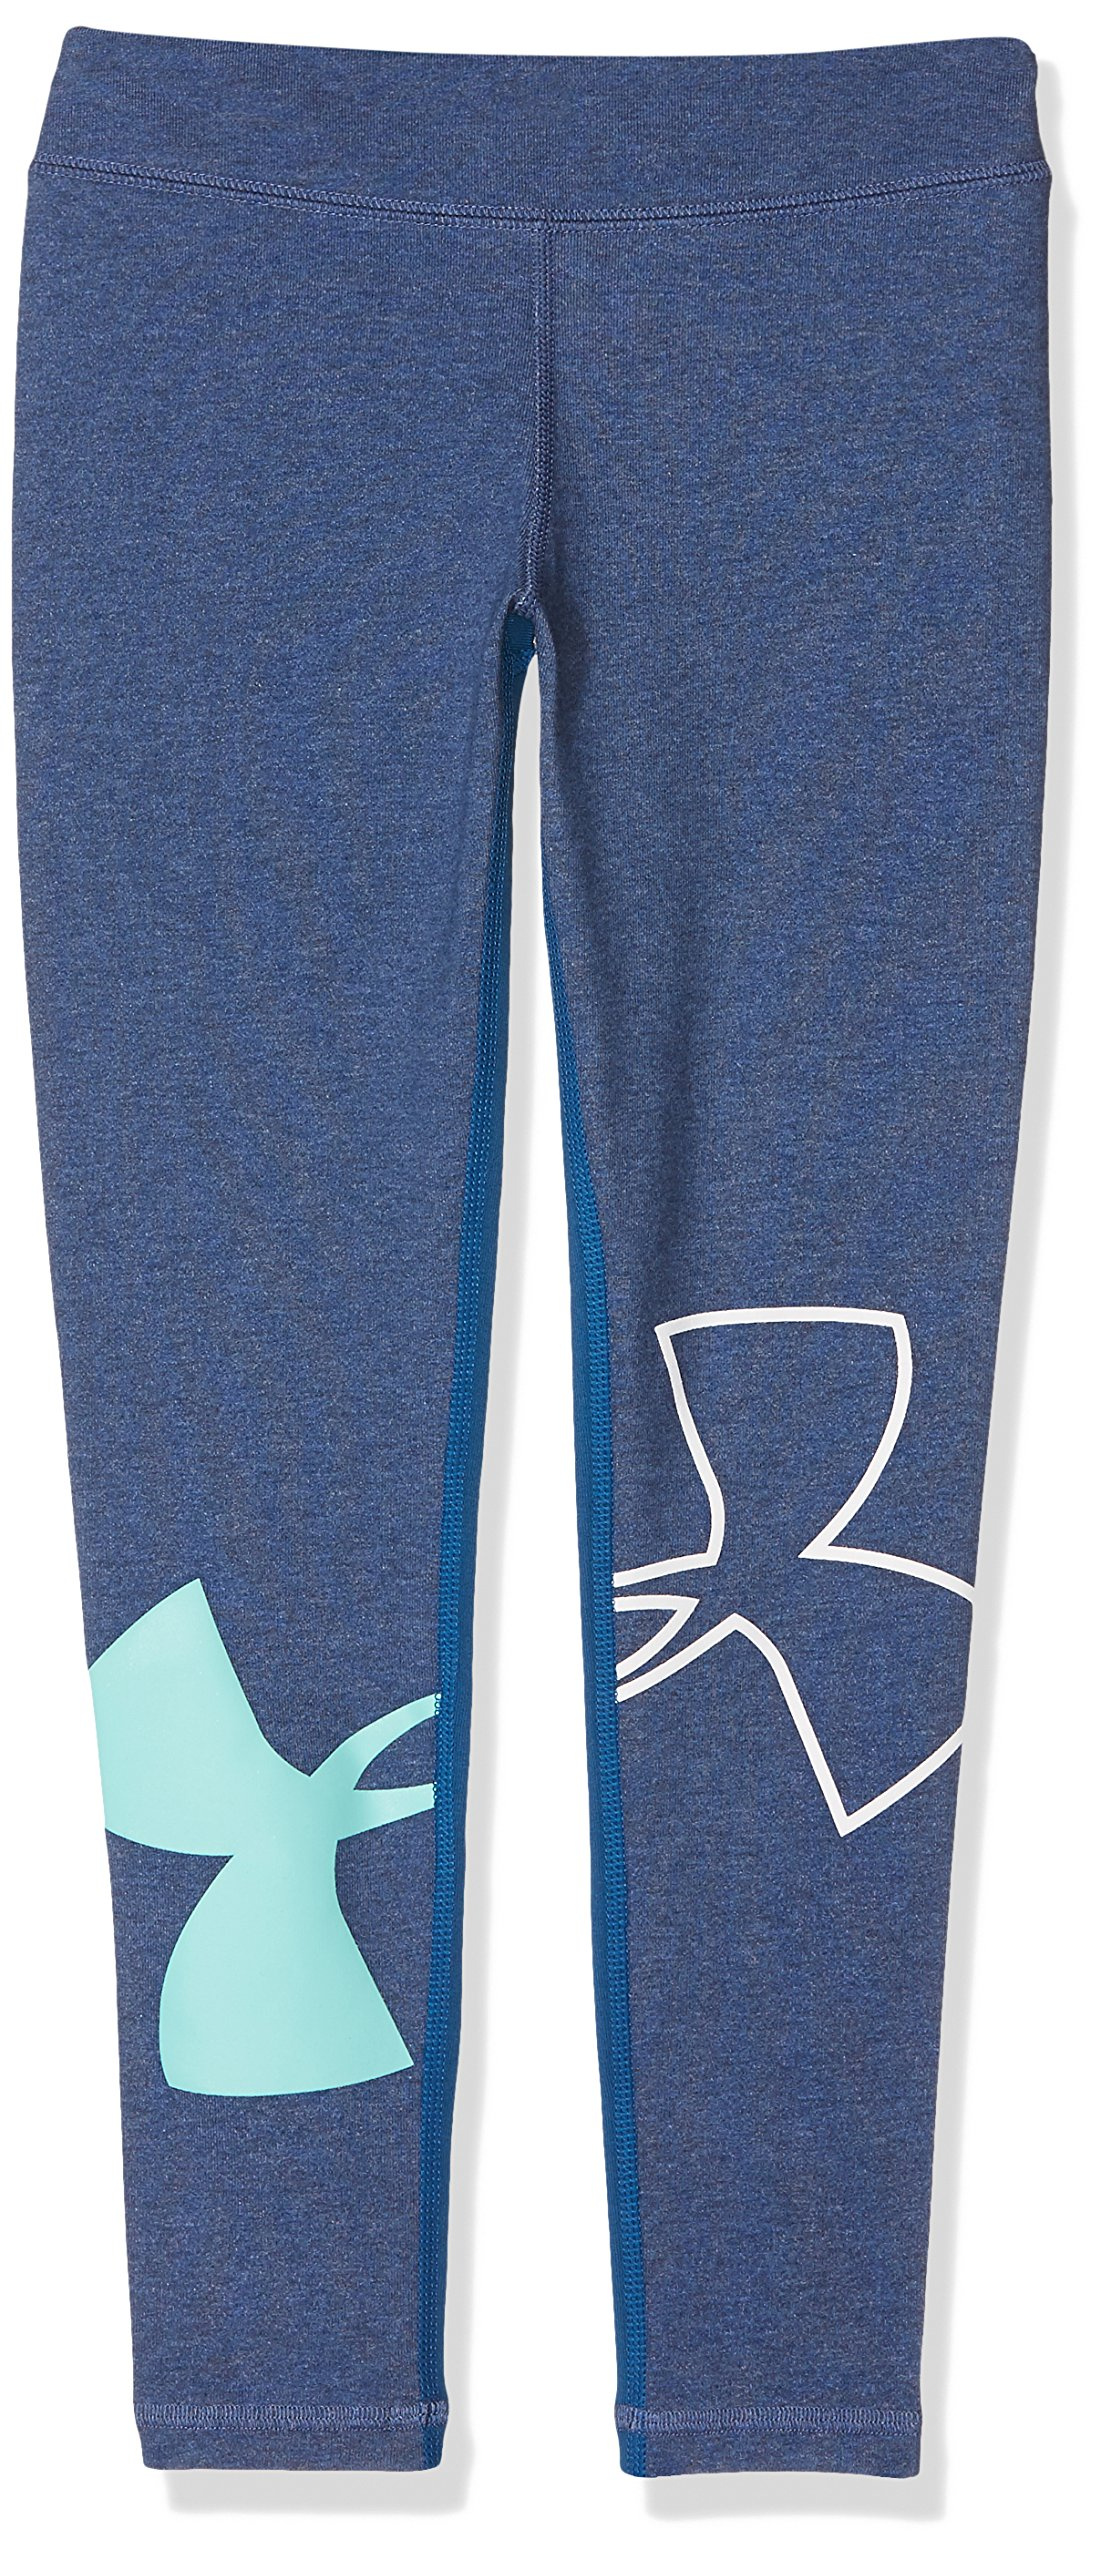 Under Armour Girls UA Favorite Knit, Blue/Tide/Mint, YXL by Under Armour